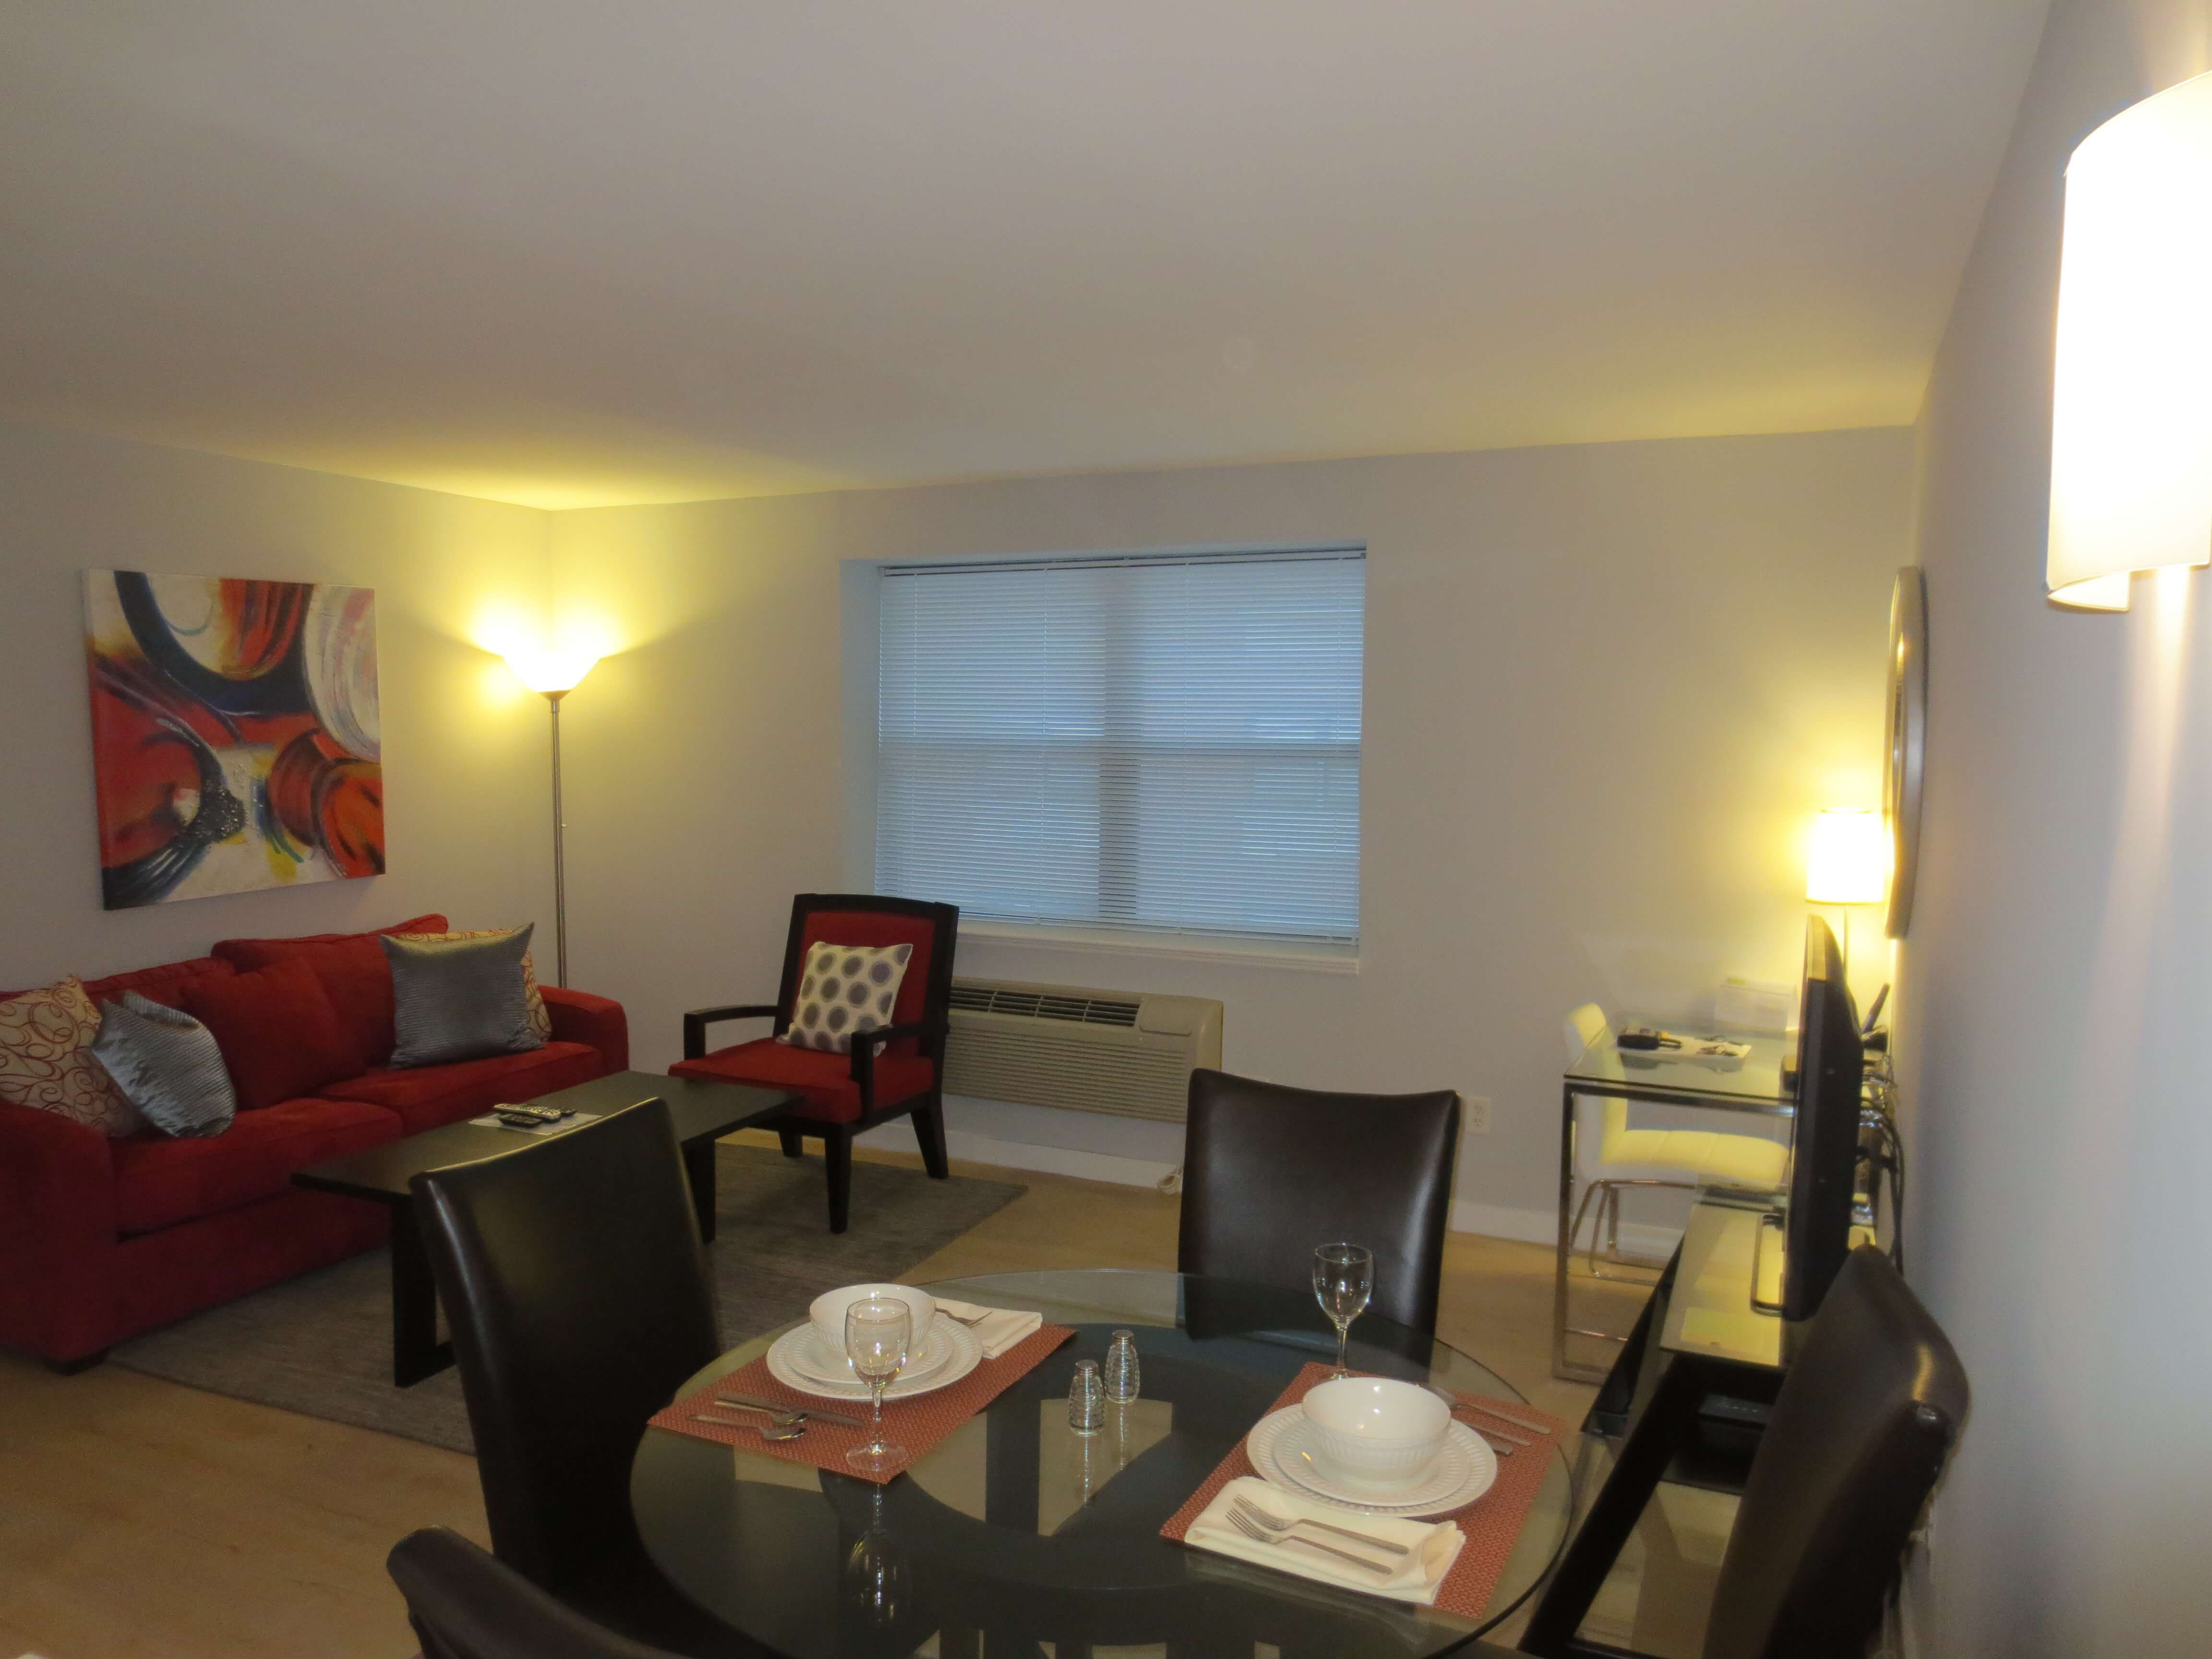 image 7 furnished 1 bedroom Apartment for rent in Morristown, Morris County